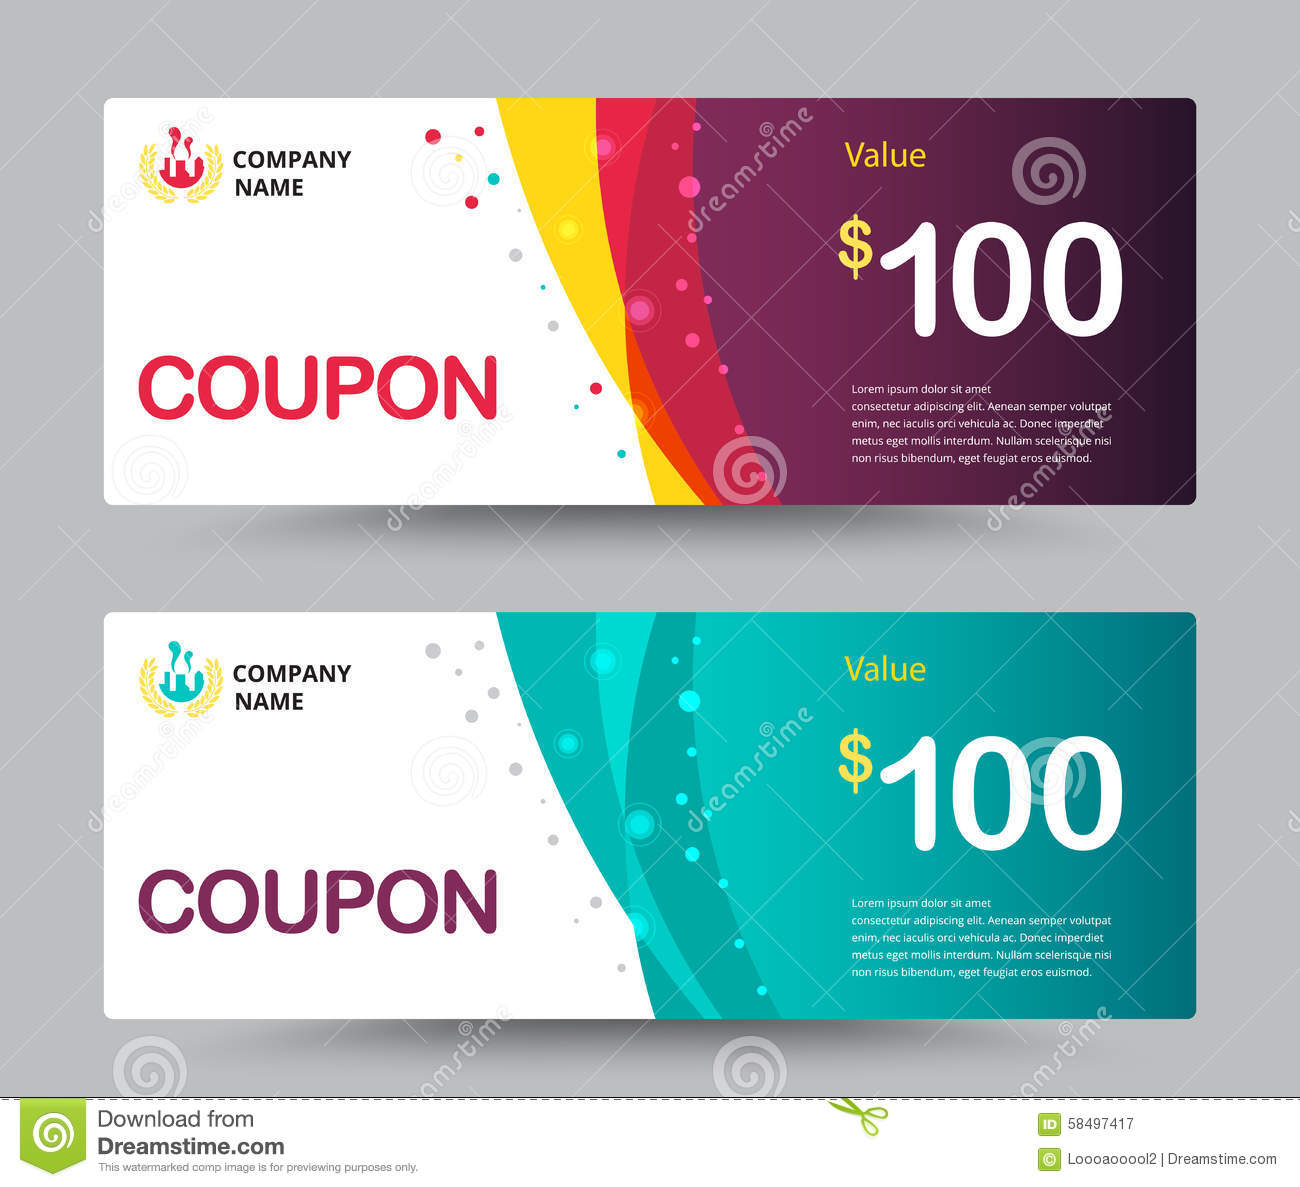 coupon graphic design